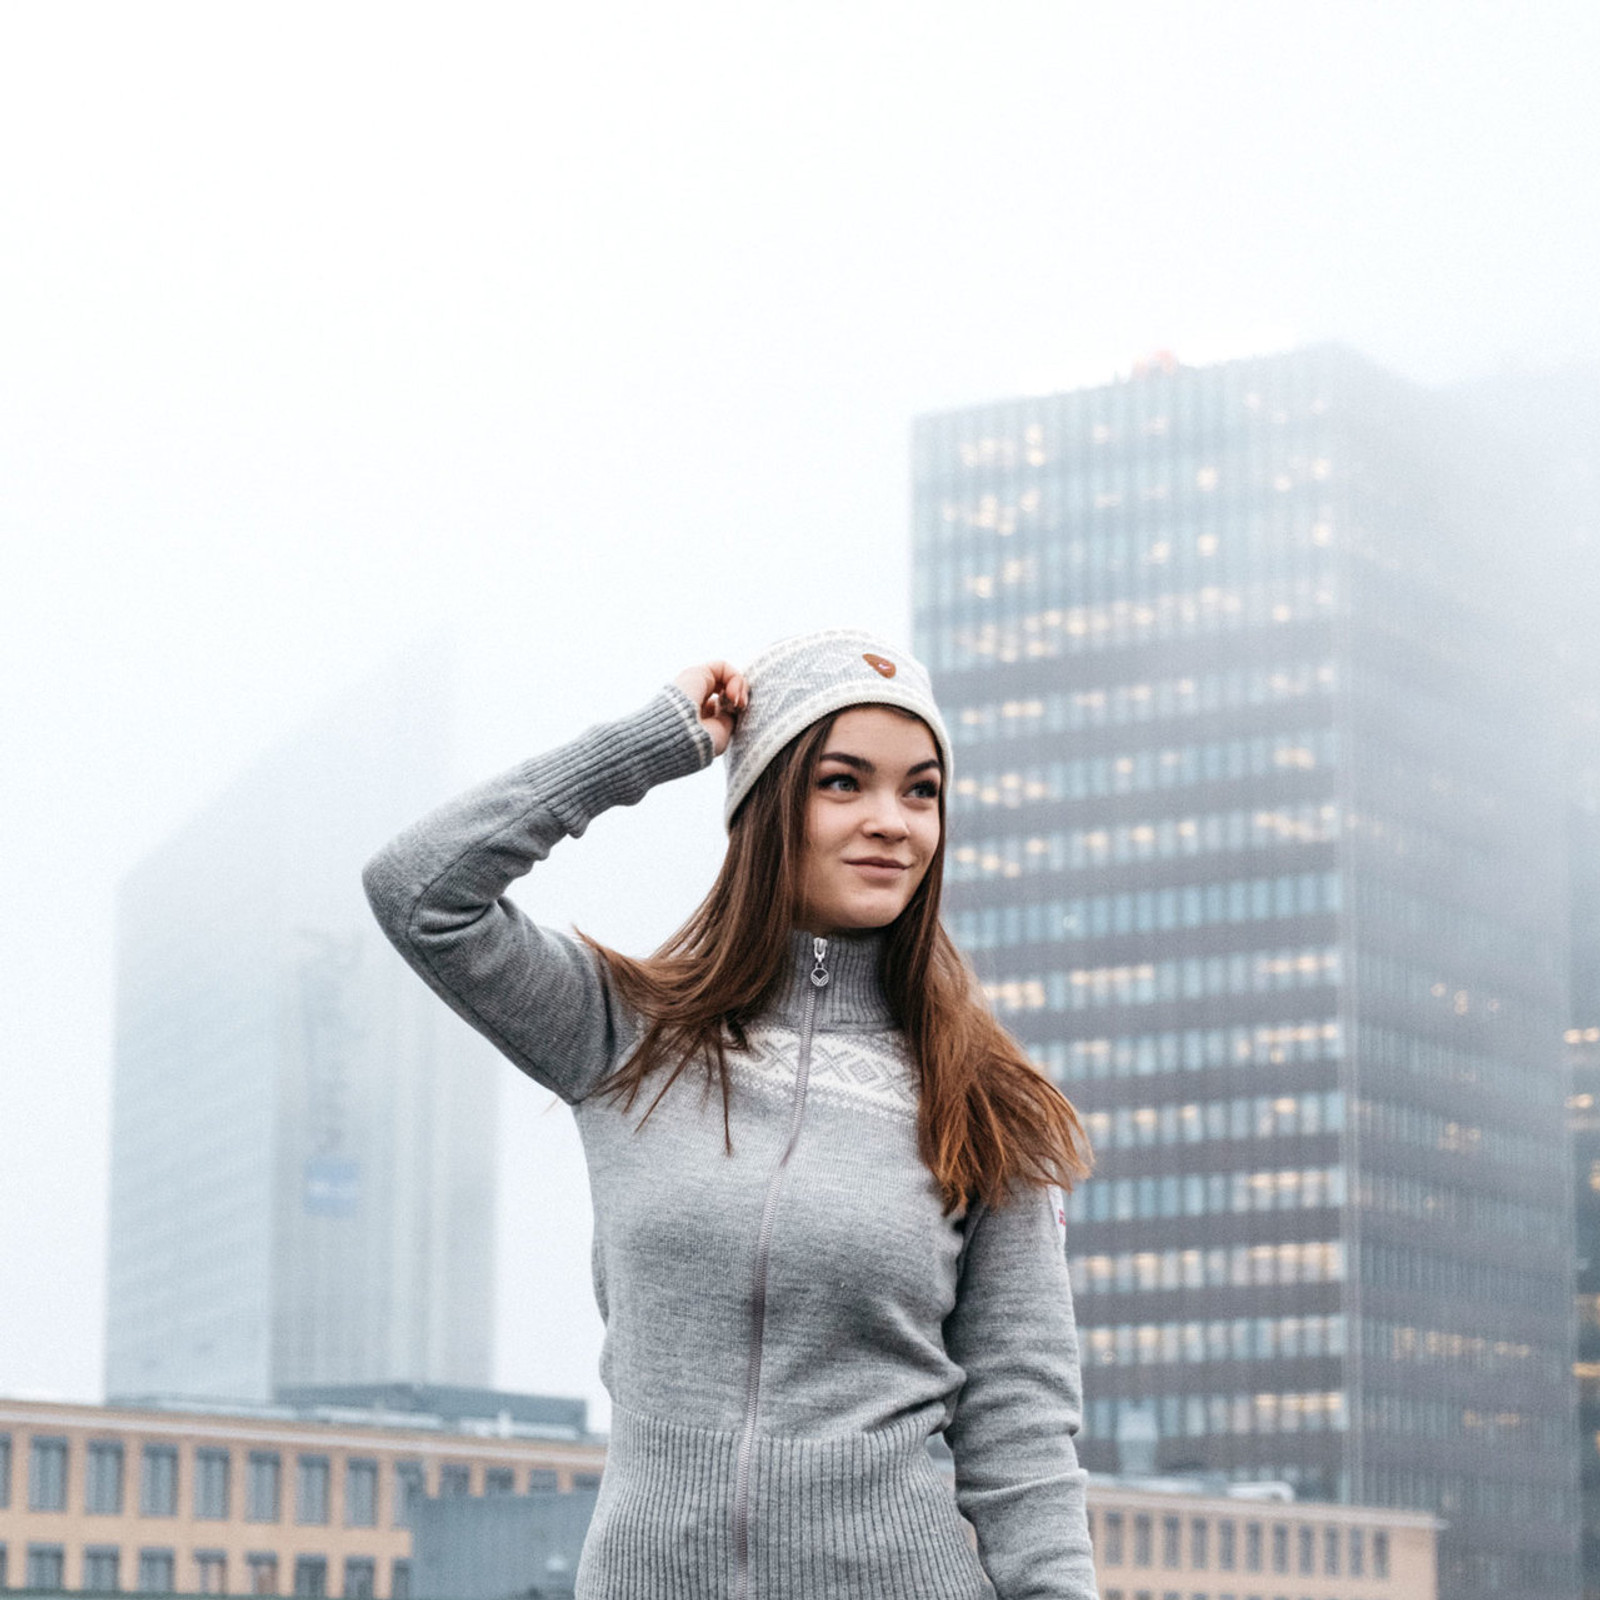 Woman on Oslo rooftop wearing Dale of Norway Hemsedal ladies cardigan in Light Charcoal/Off-White, 82261-T, and Cortina headband in Off White/Light Charcoal, 25014-E